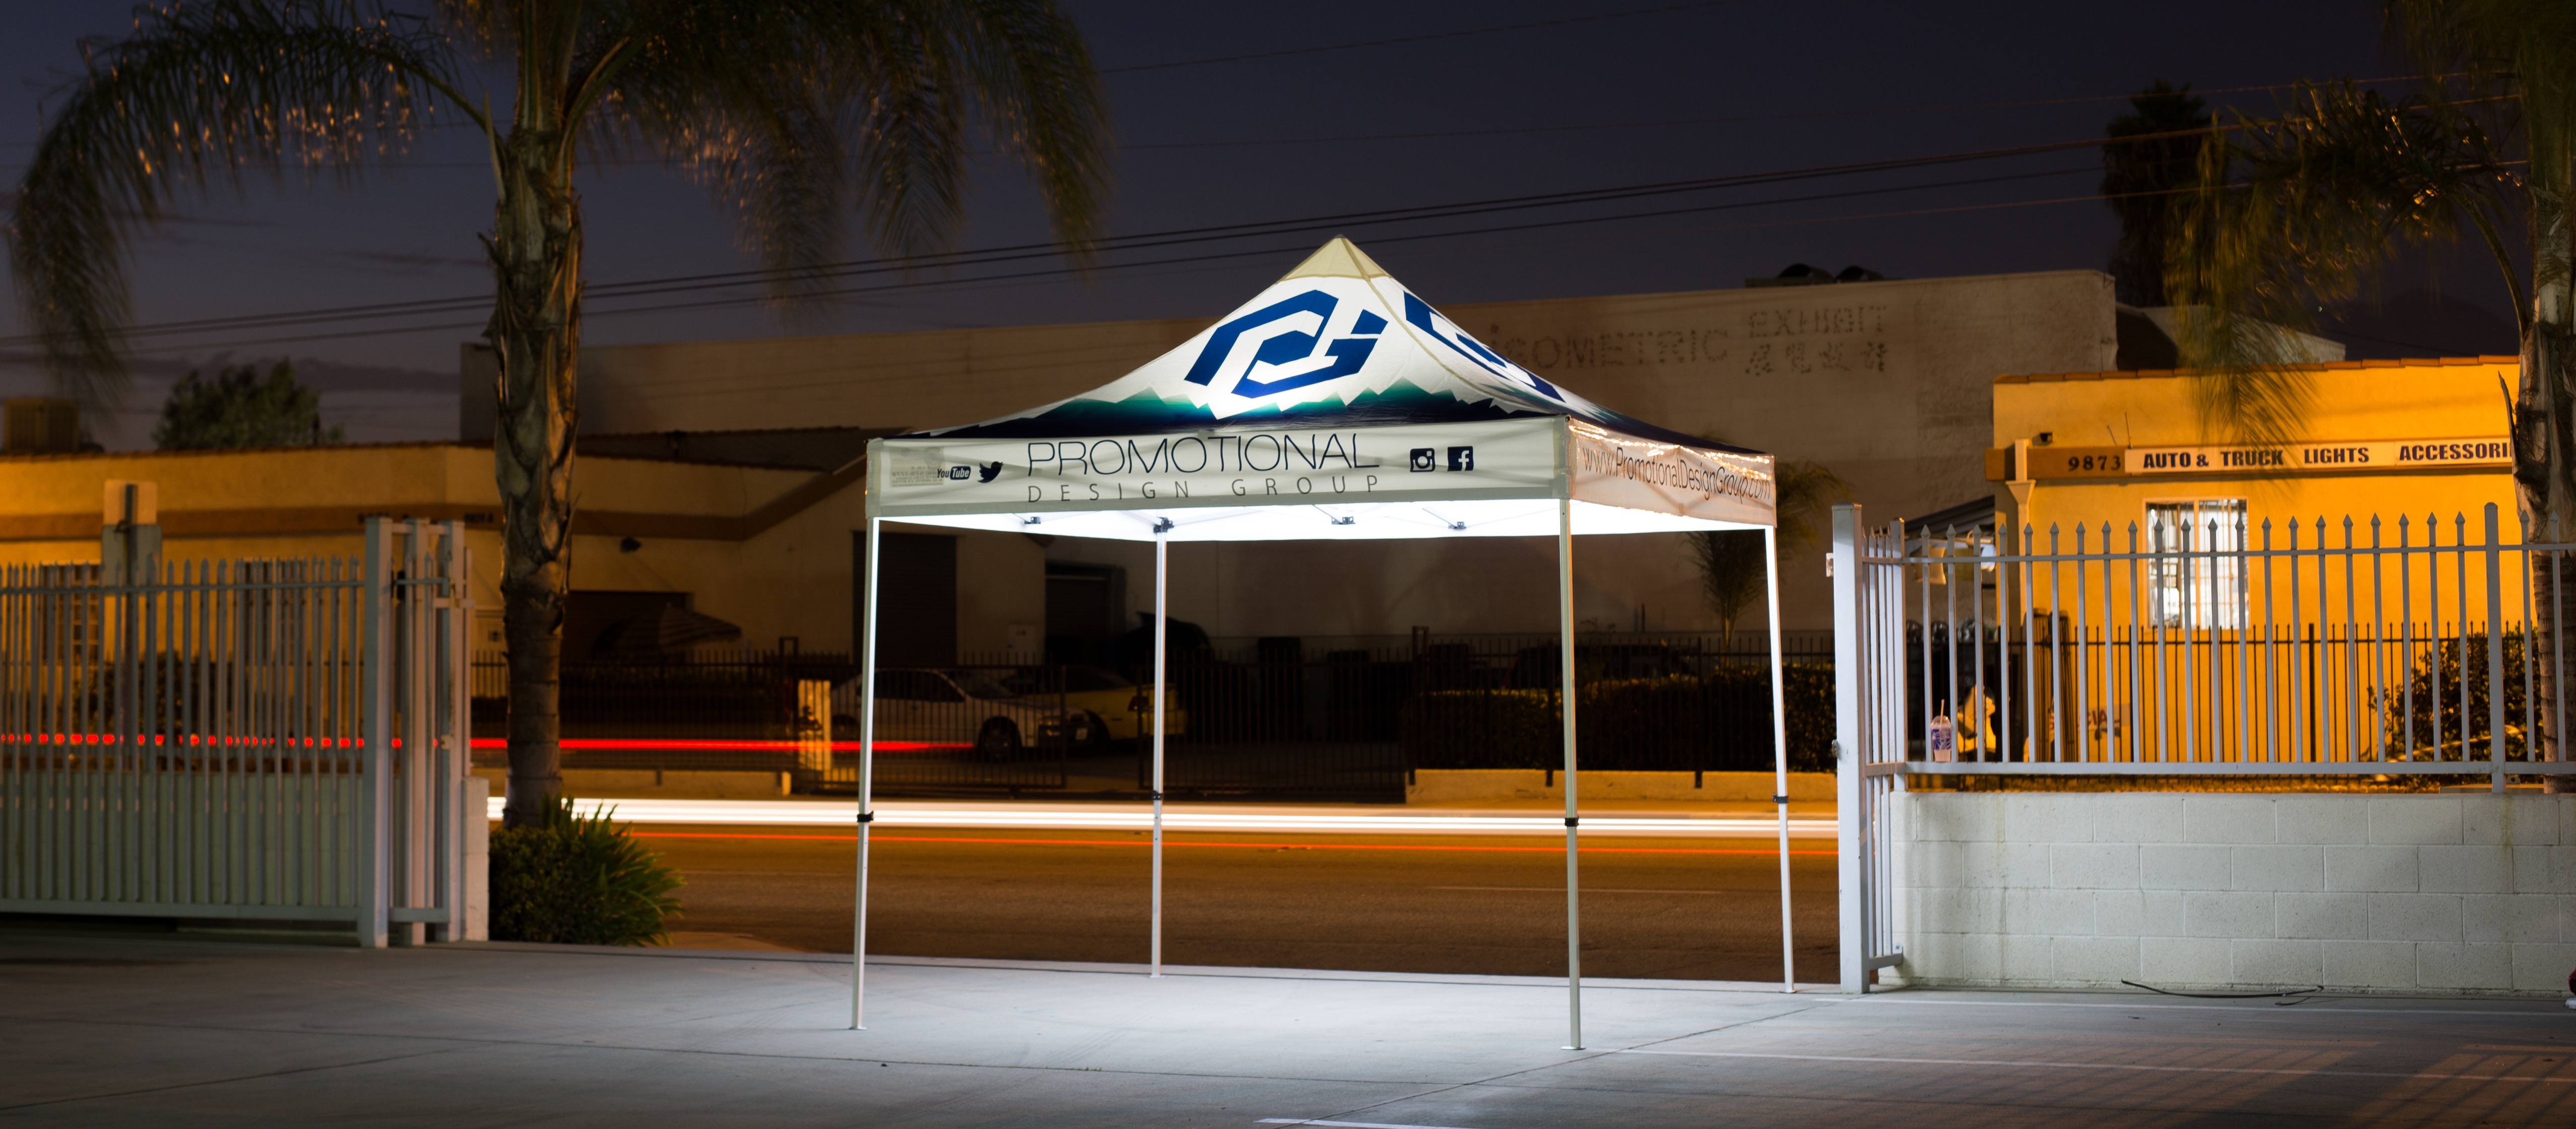 Canopy tent lights with a car passing in the background and an illuminated pop up canopy in the forefront